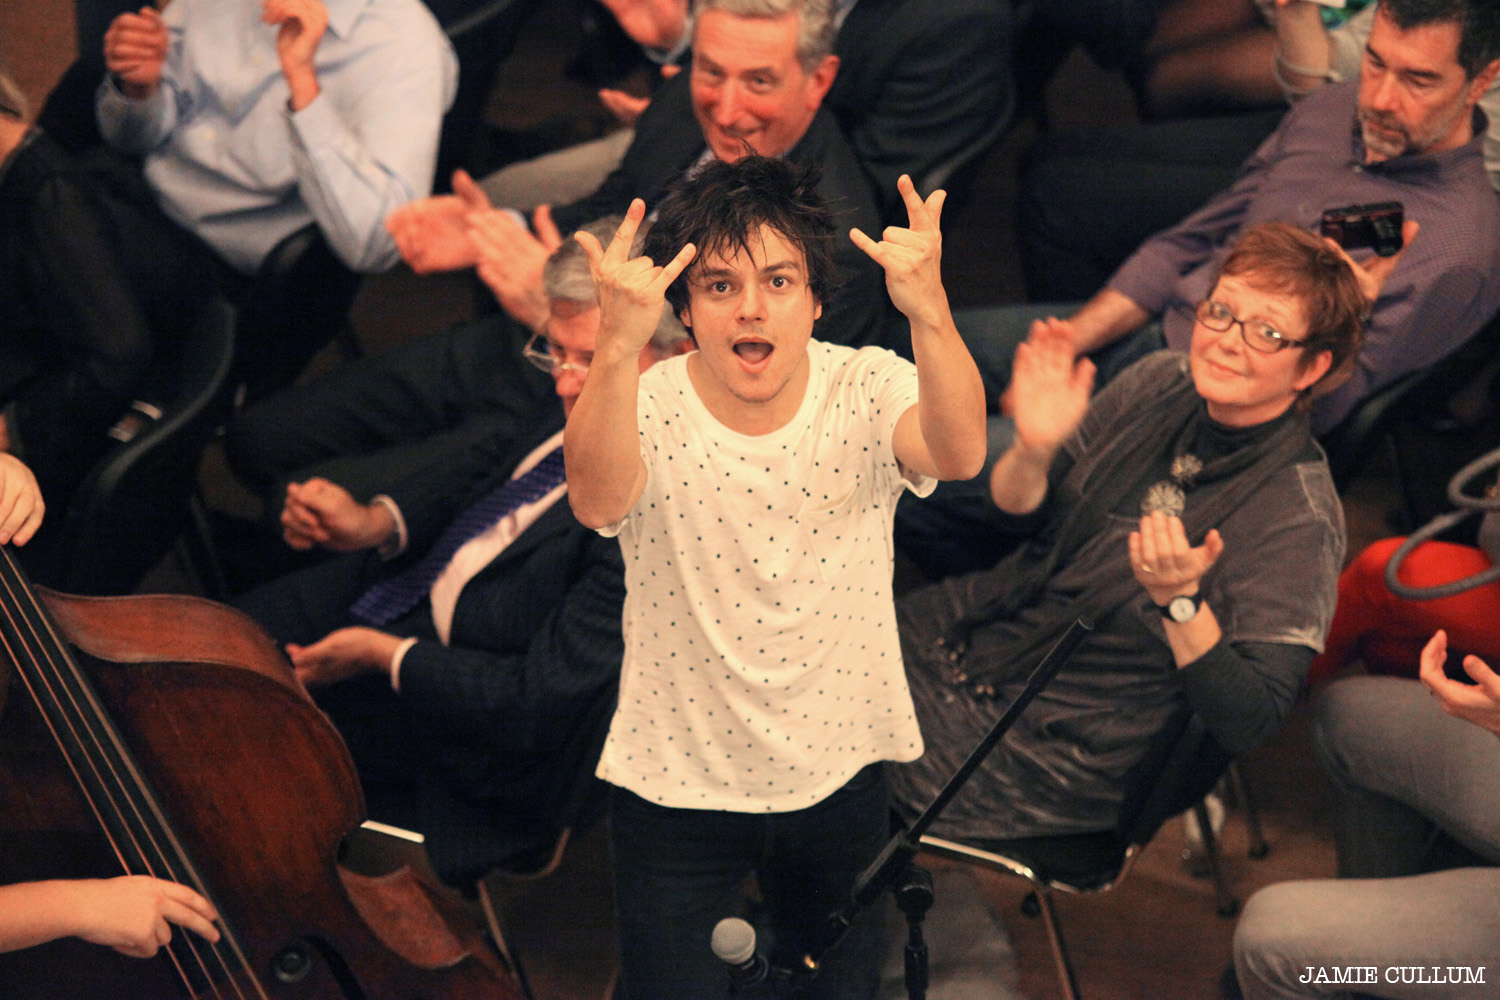 020_084_Jamie_Cullum_at_Chappells_by_Harriet_Armstrong